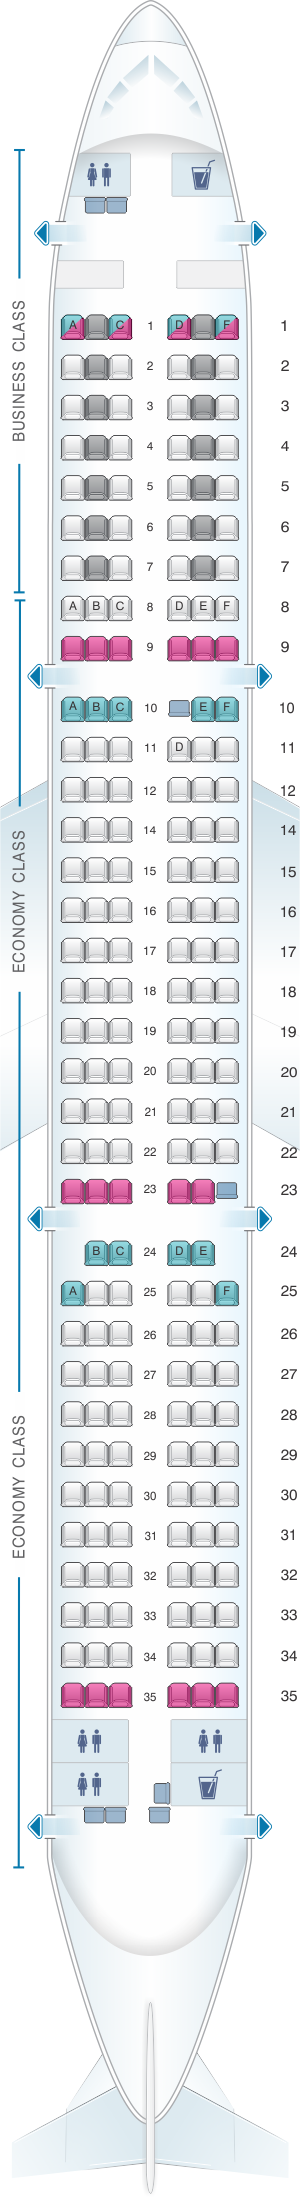 Seat map for Austrian Airlines Airbus A321 211